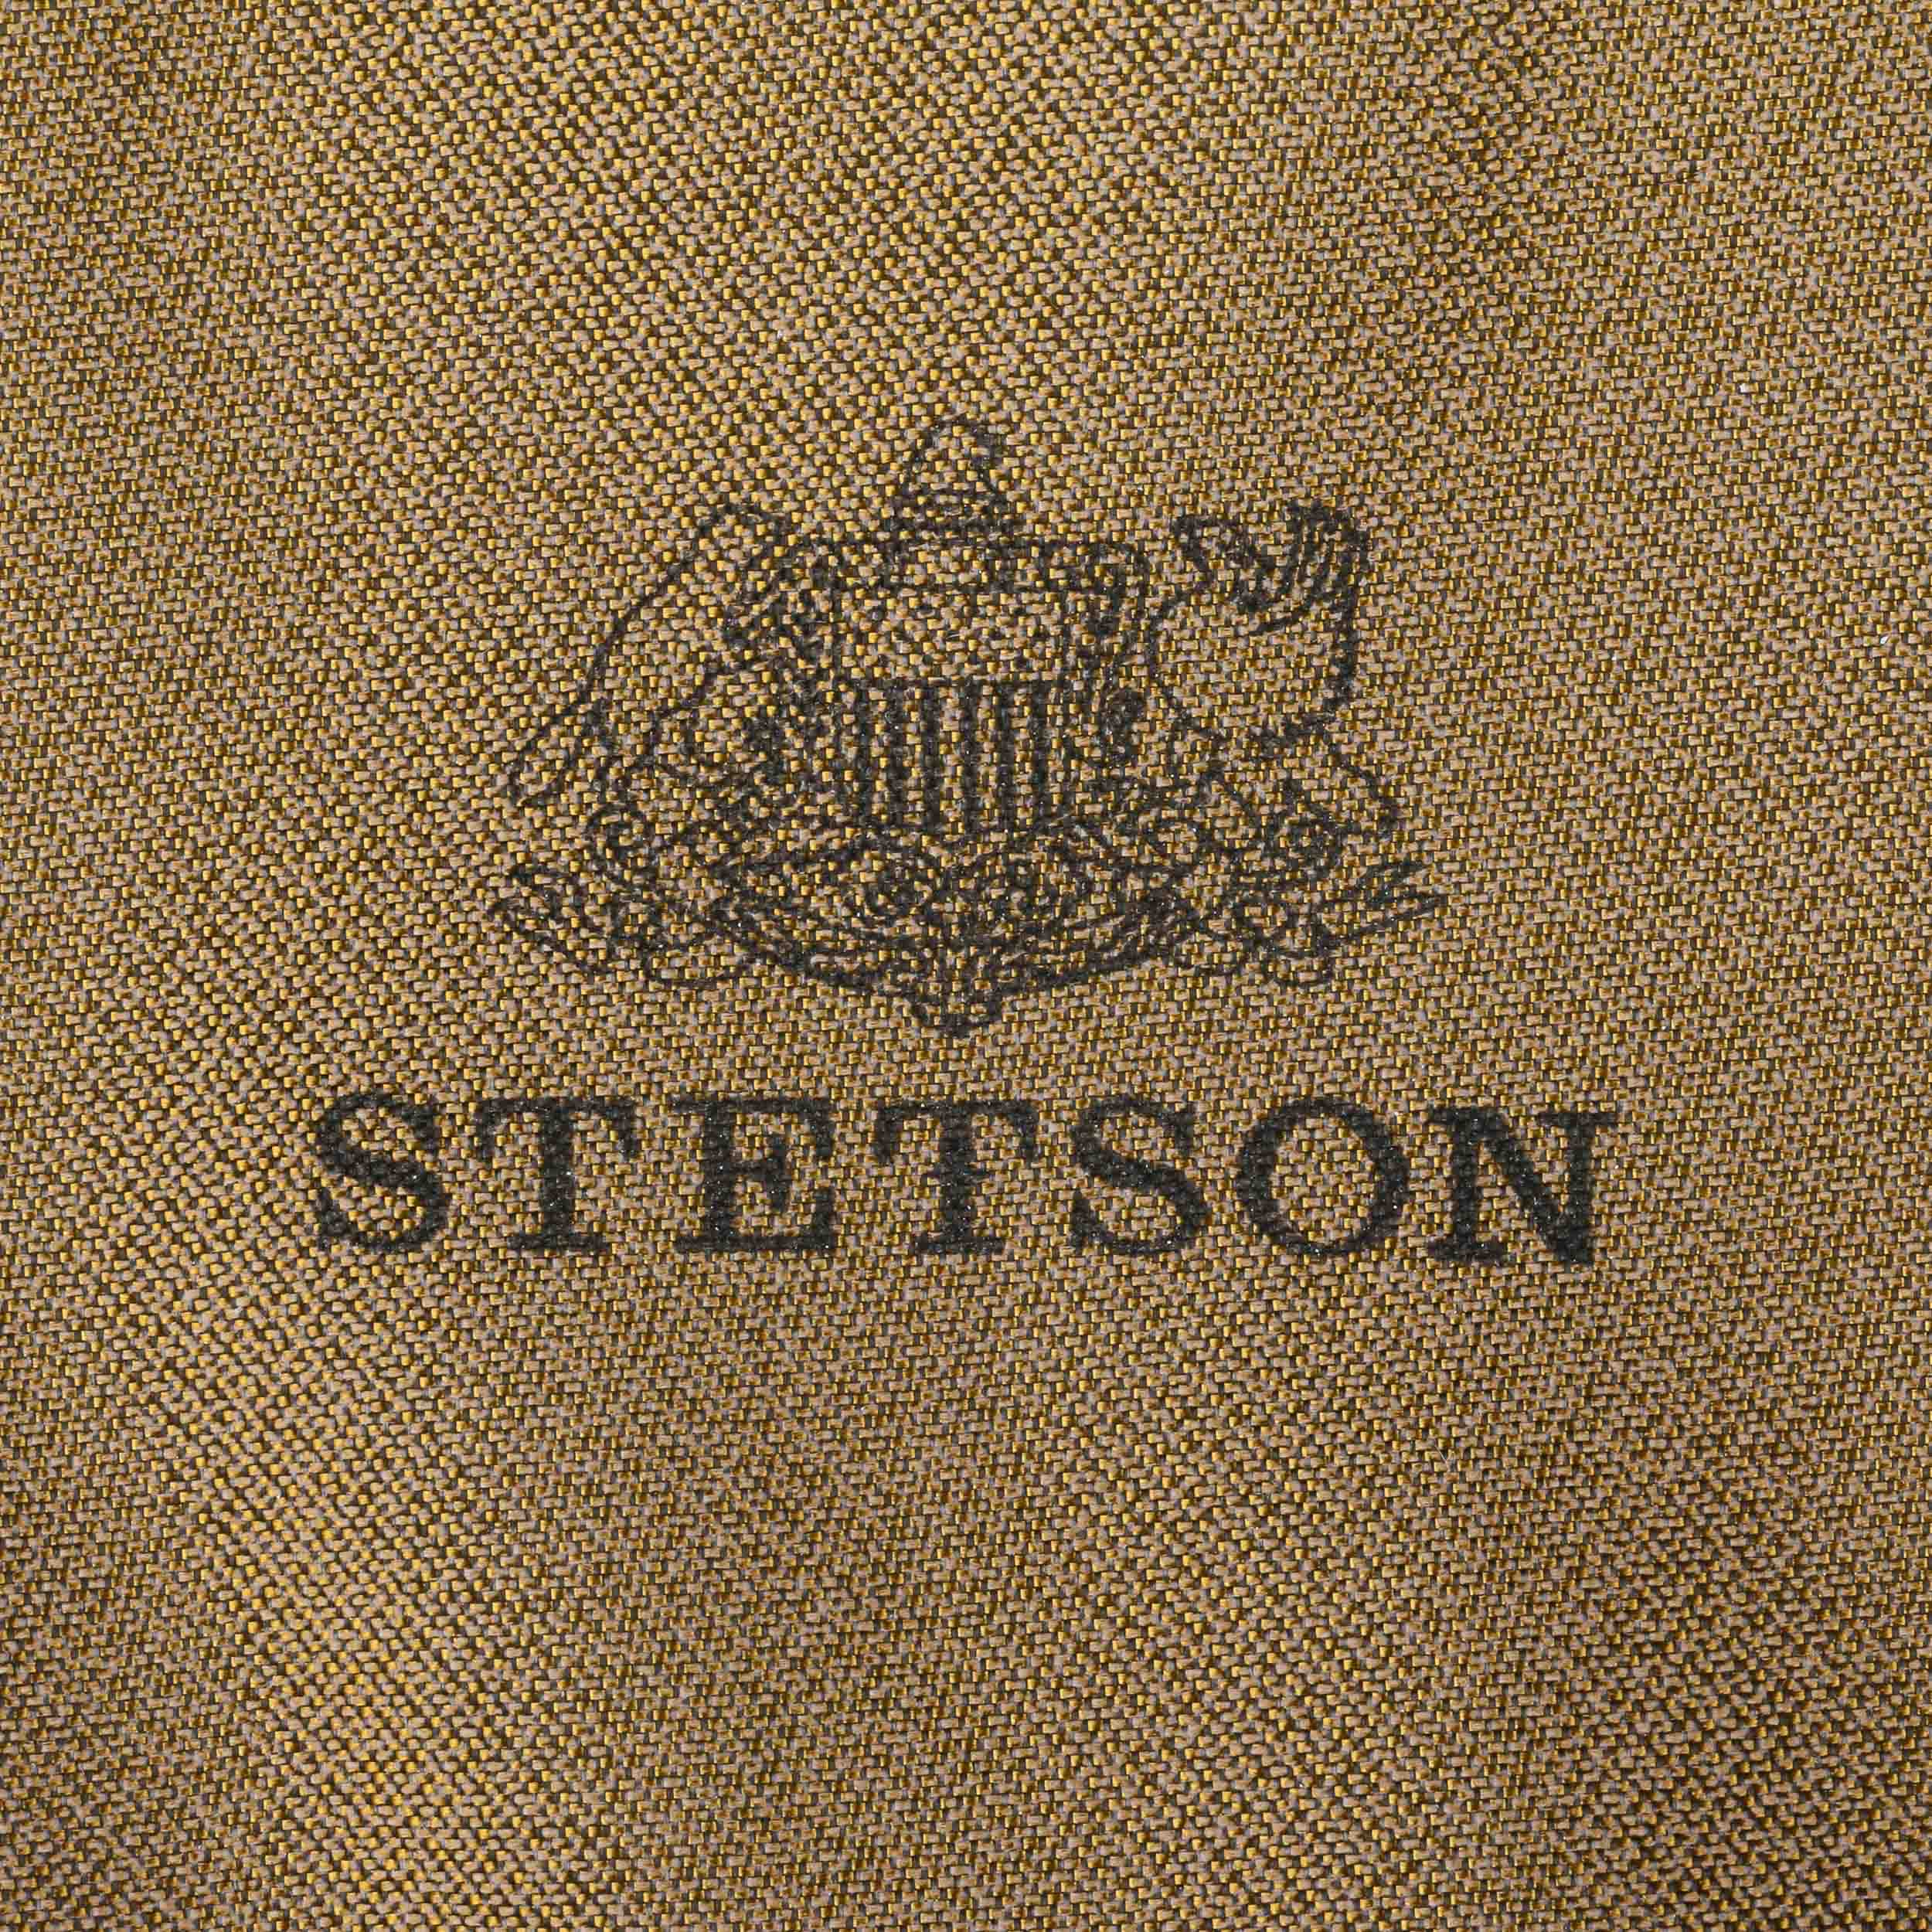 ... Harris Tweed Check Flat Cap by Stetson - blue 5 ... 3d0f52d7e200